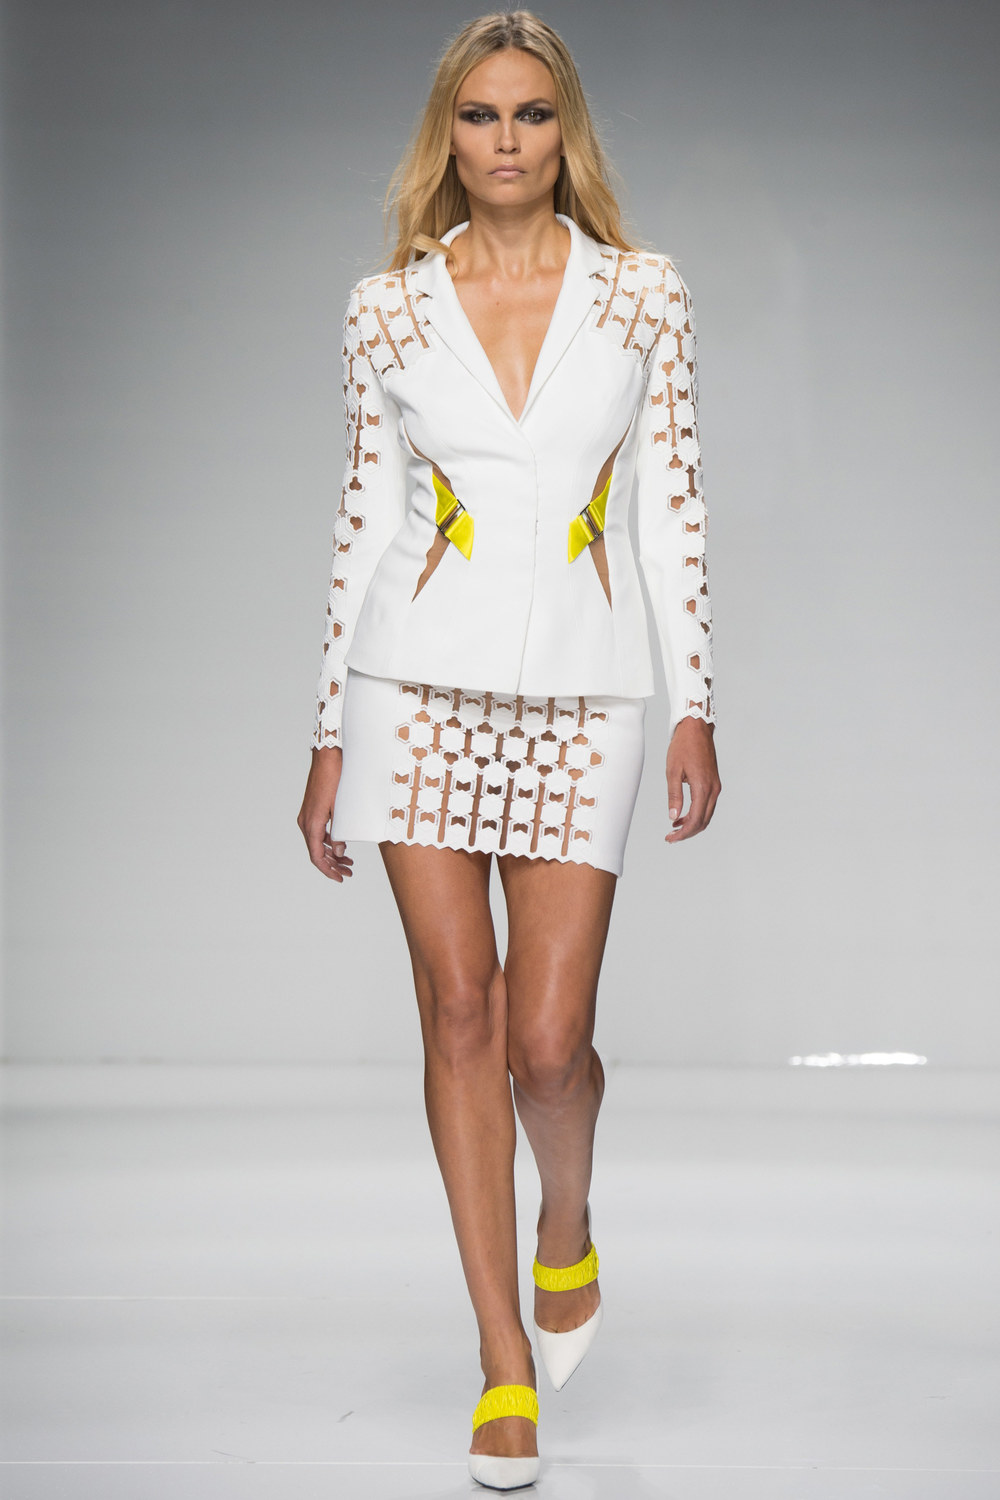 Atelier-Versace-Courute-Spring-2016-Paris-Fashion-Week-3.jpg